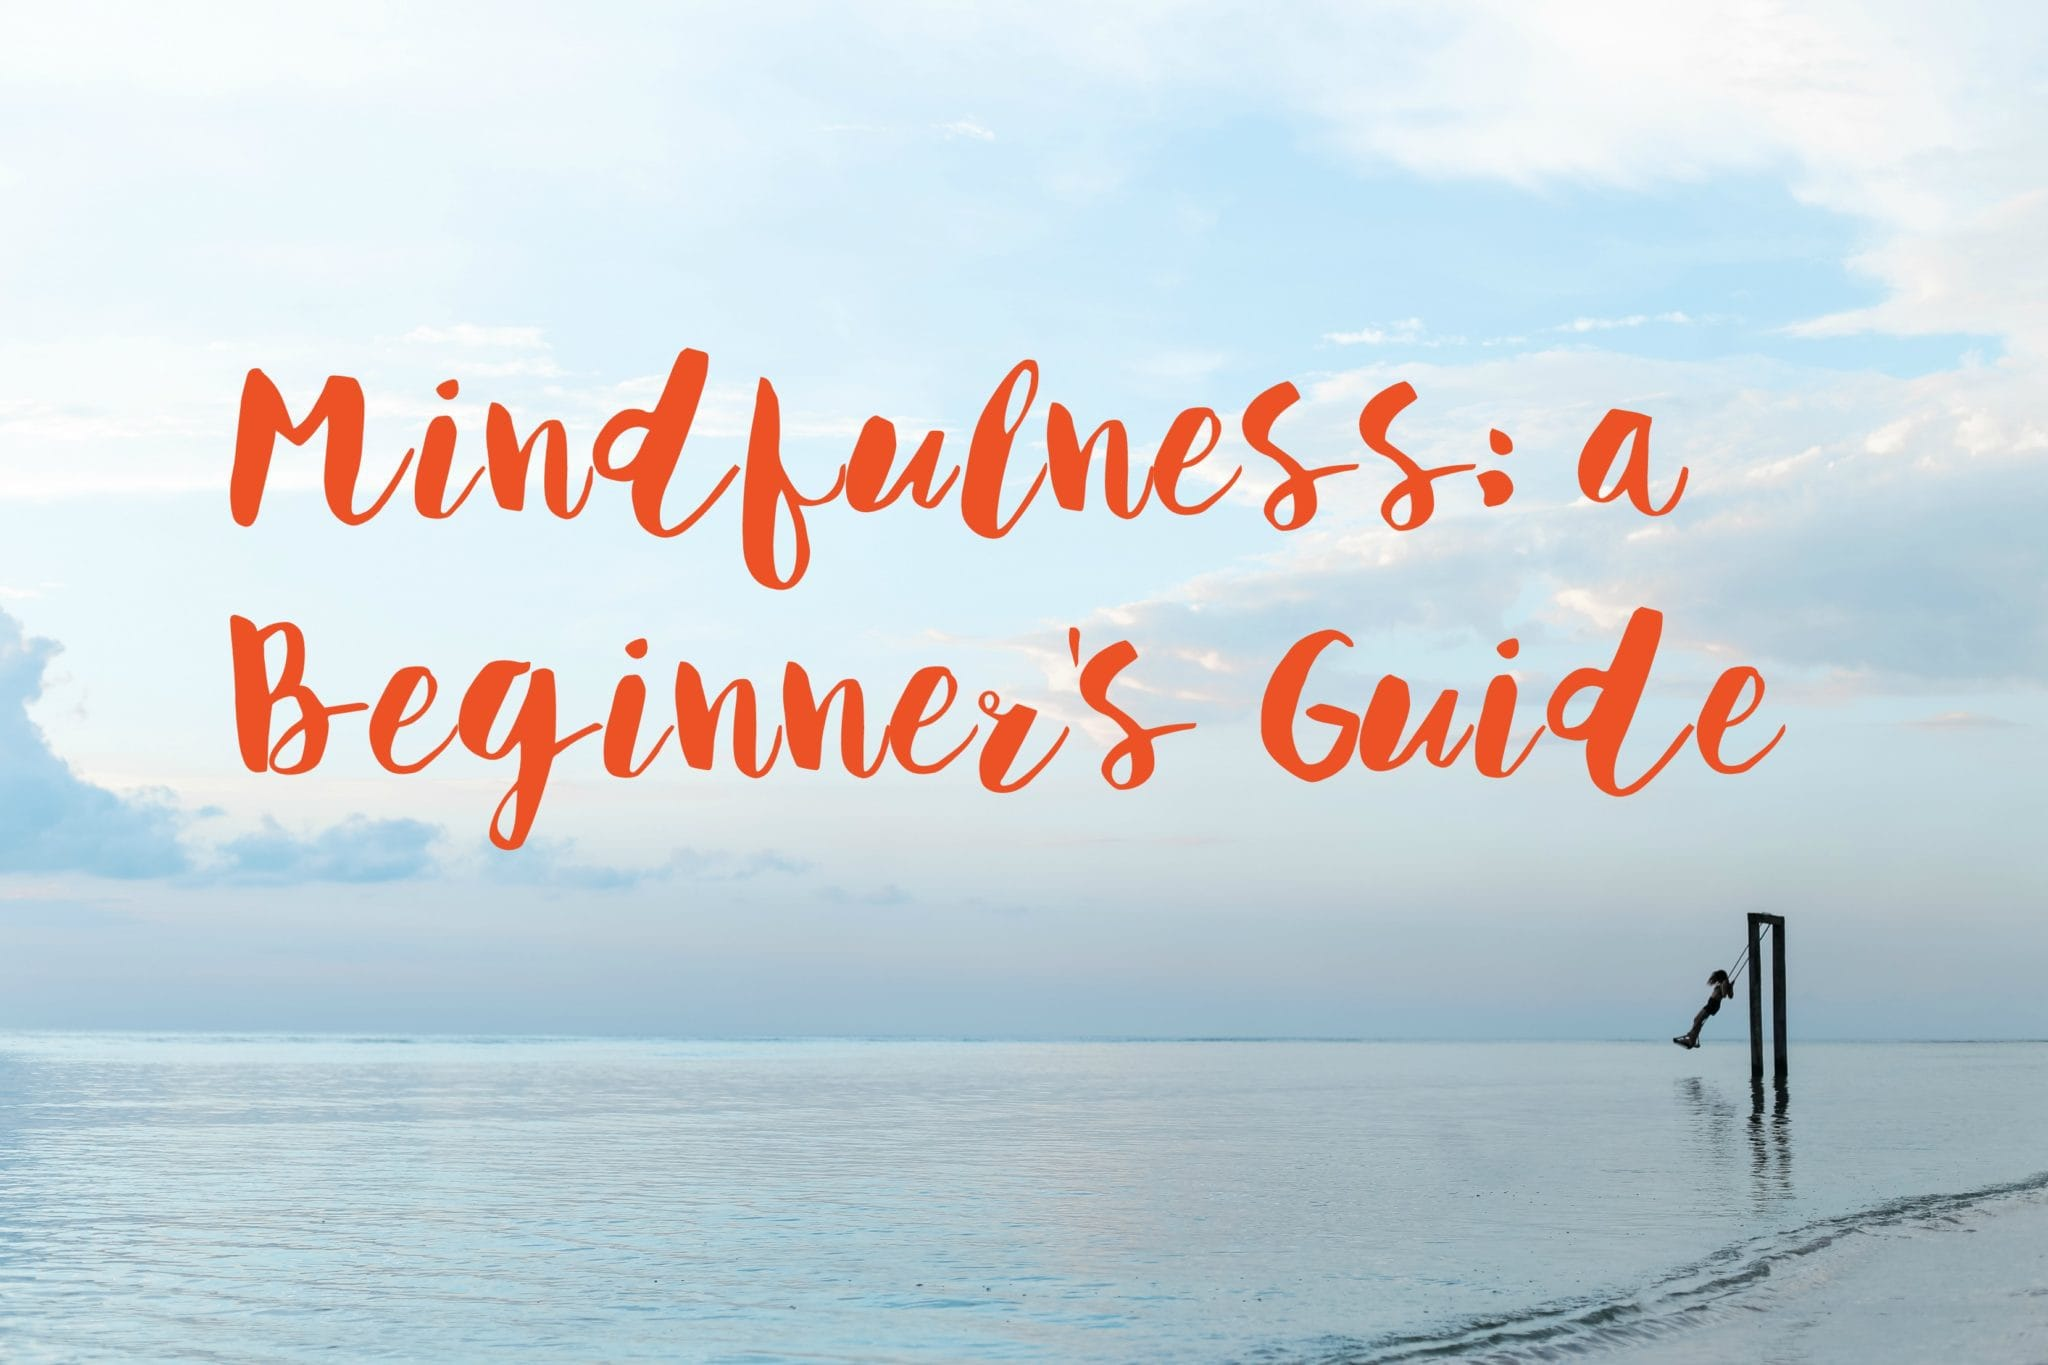 mindfulness a beginners guide text